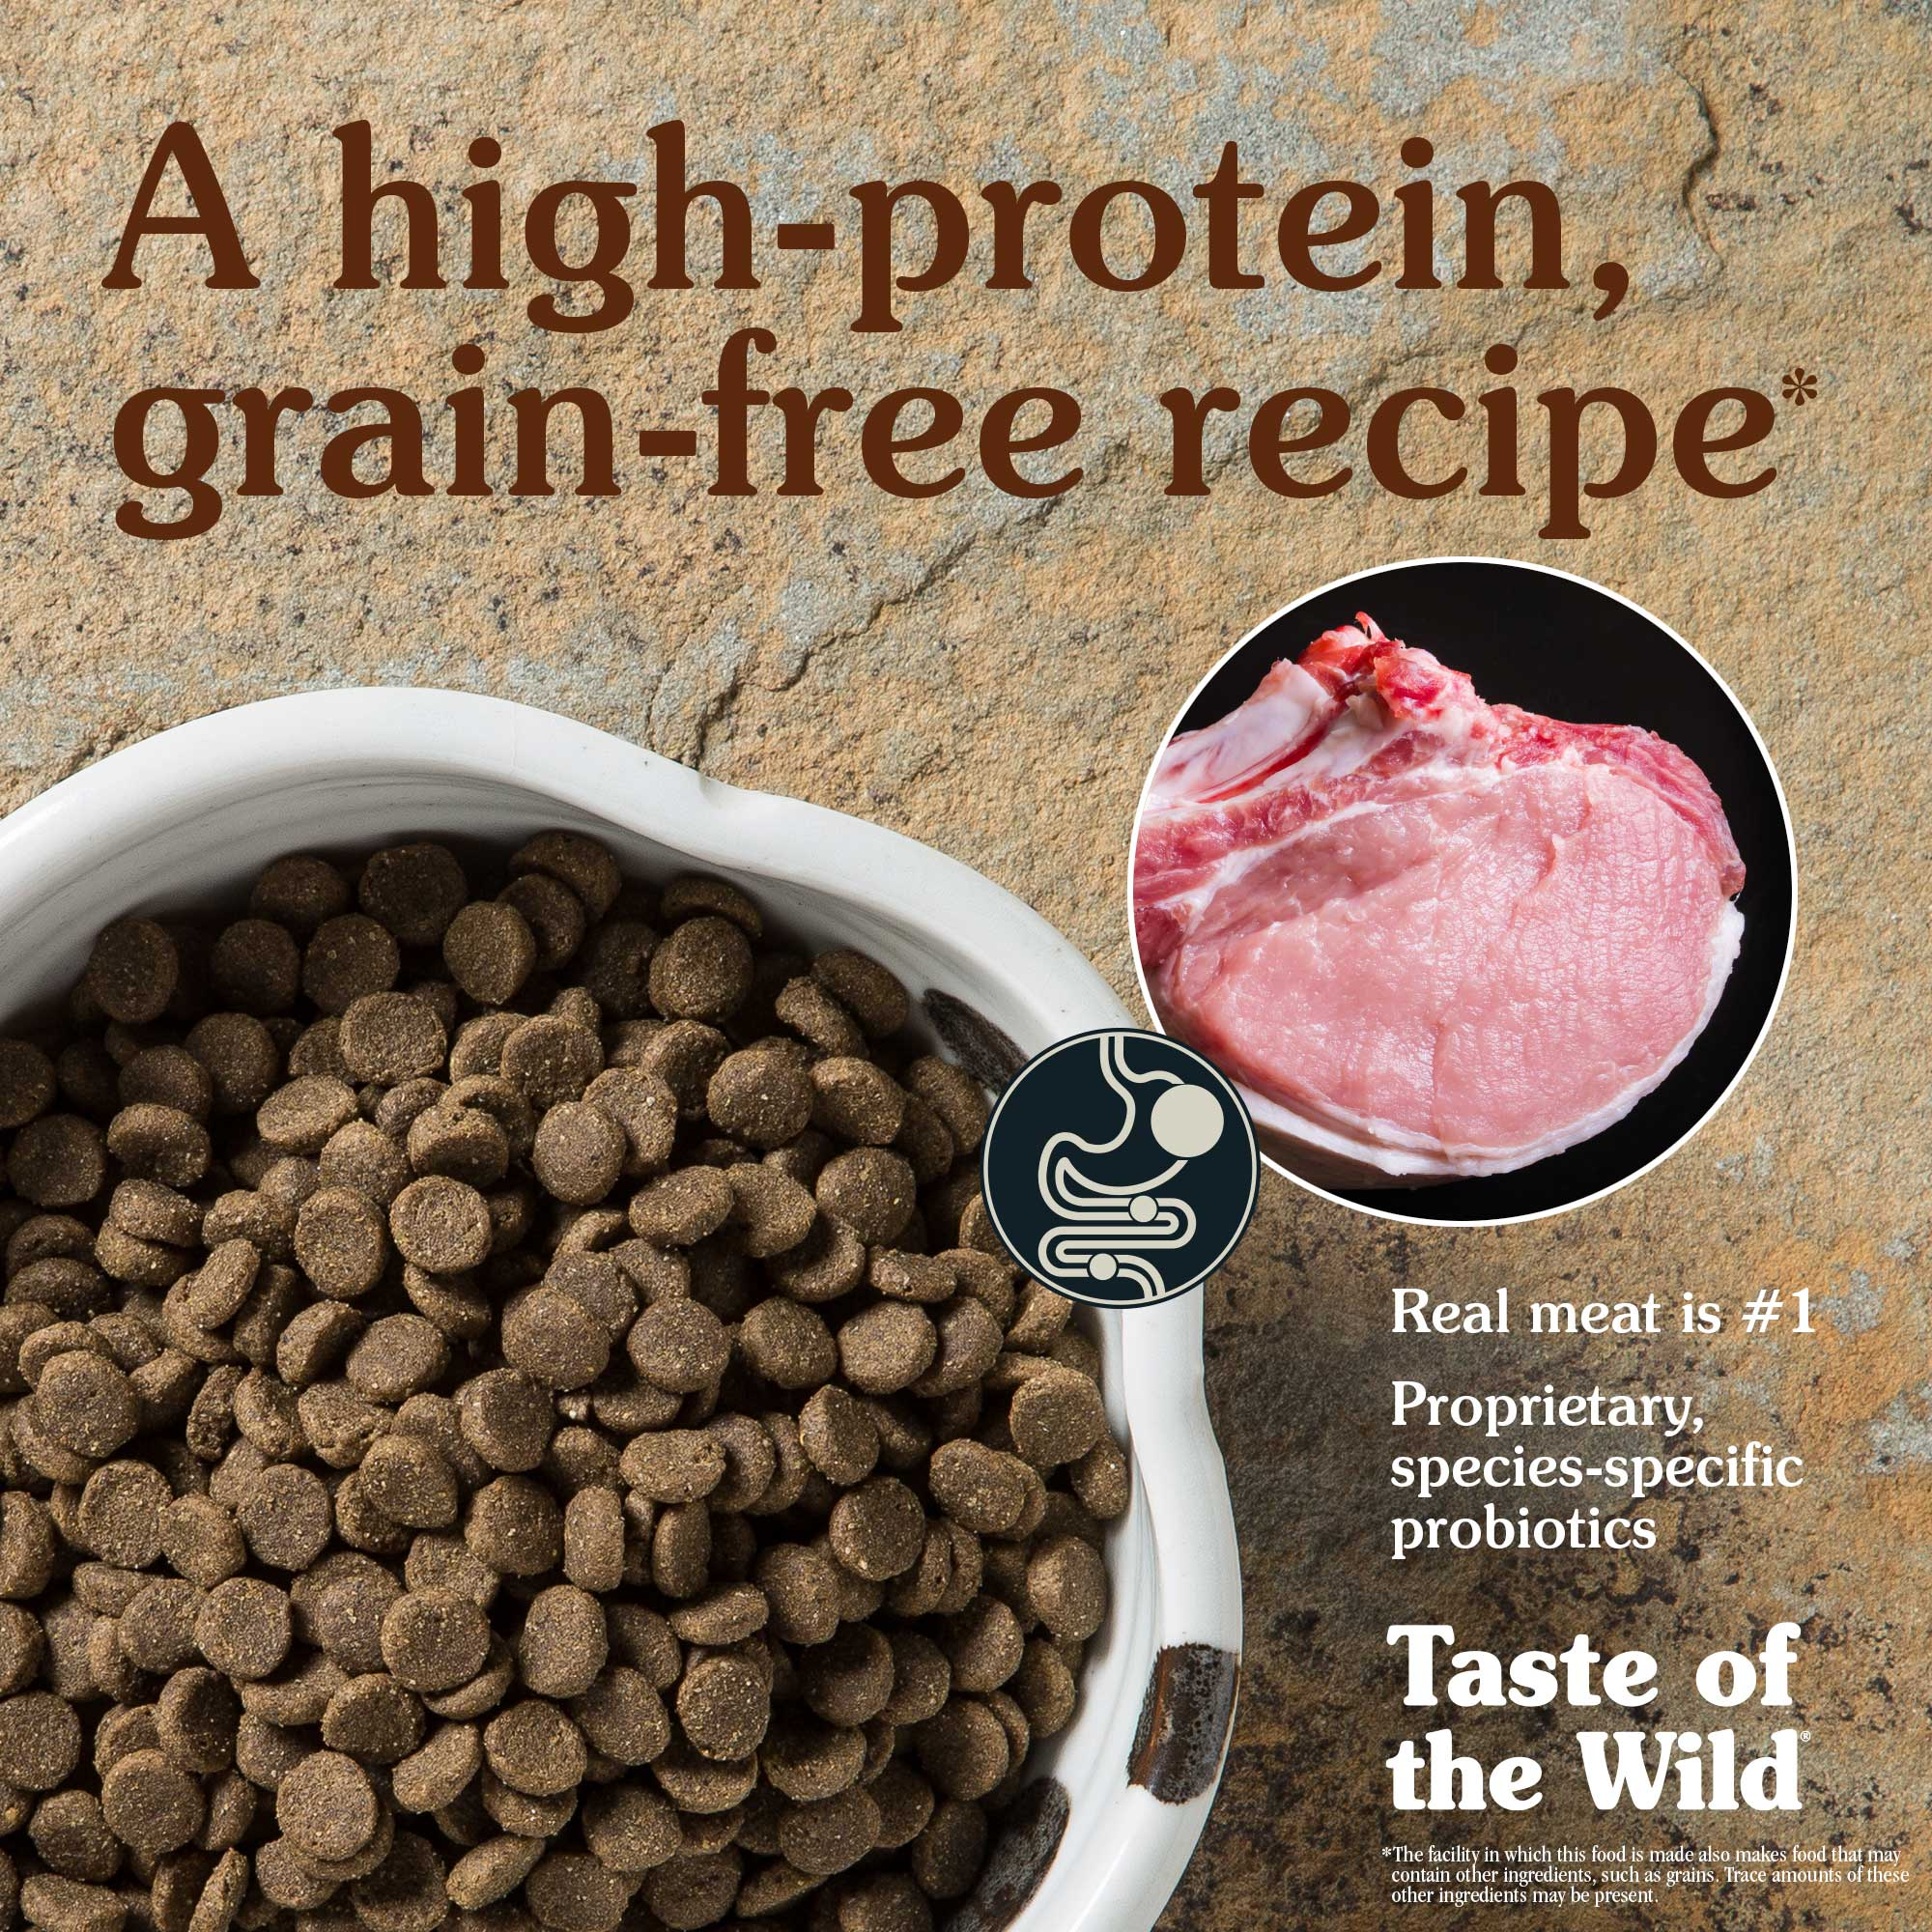 A high-protein, grain-free recipe. Real meat is #1.